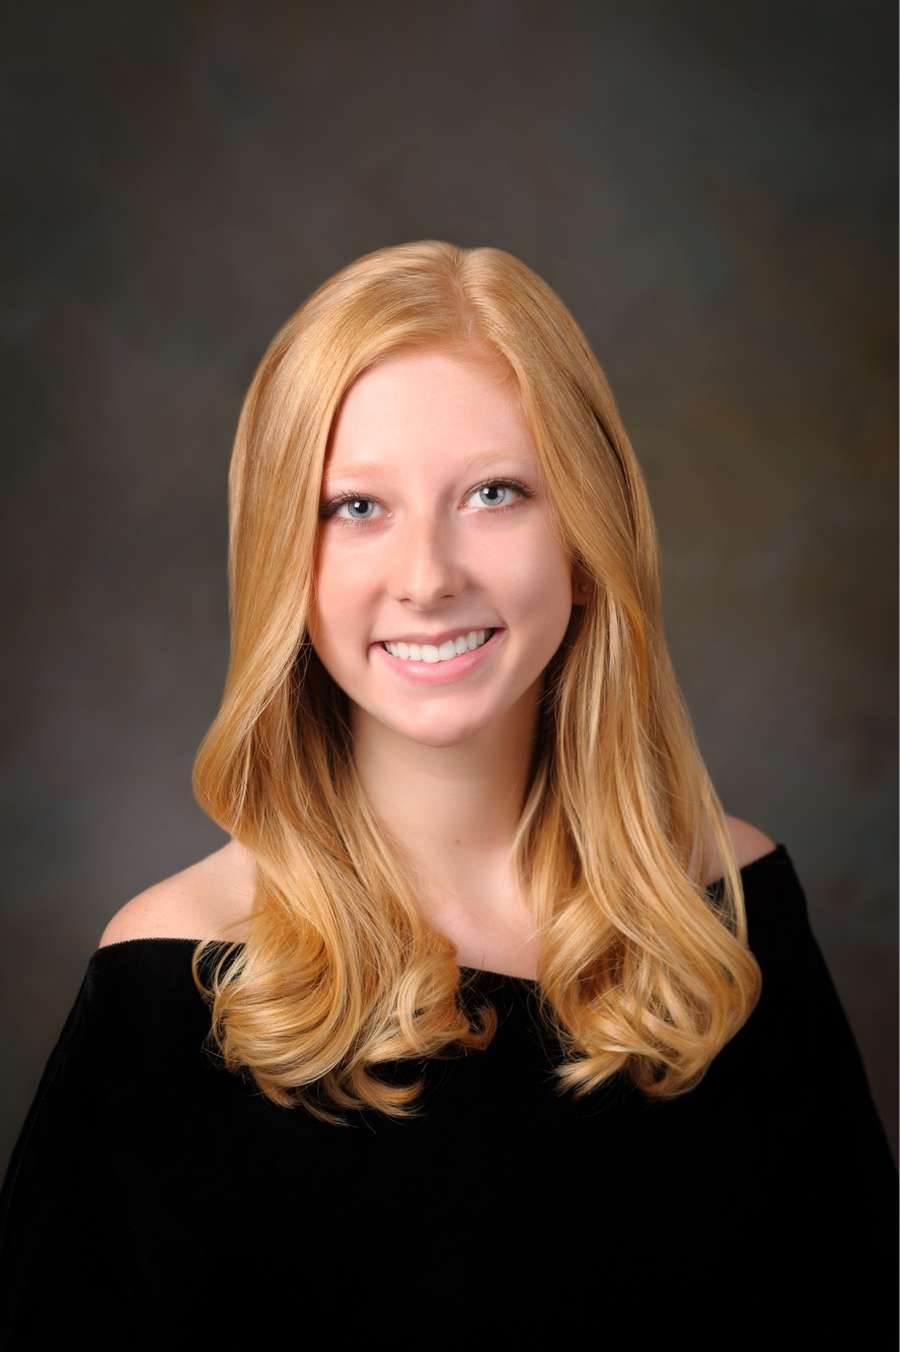 Hannah Taylor Anderson is the 2018 valedictorian at Indian Rocks Christian School.